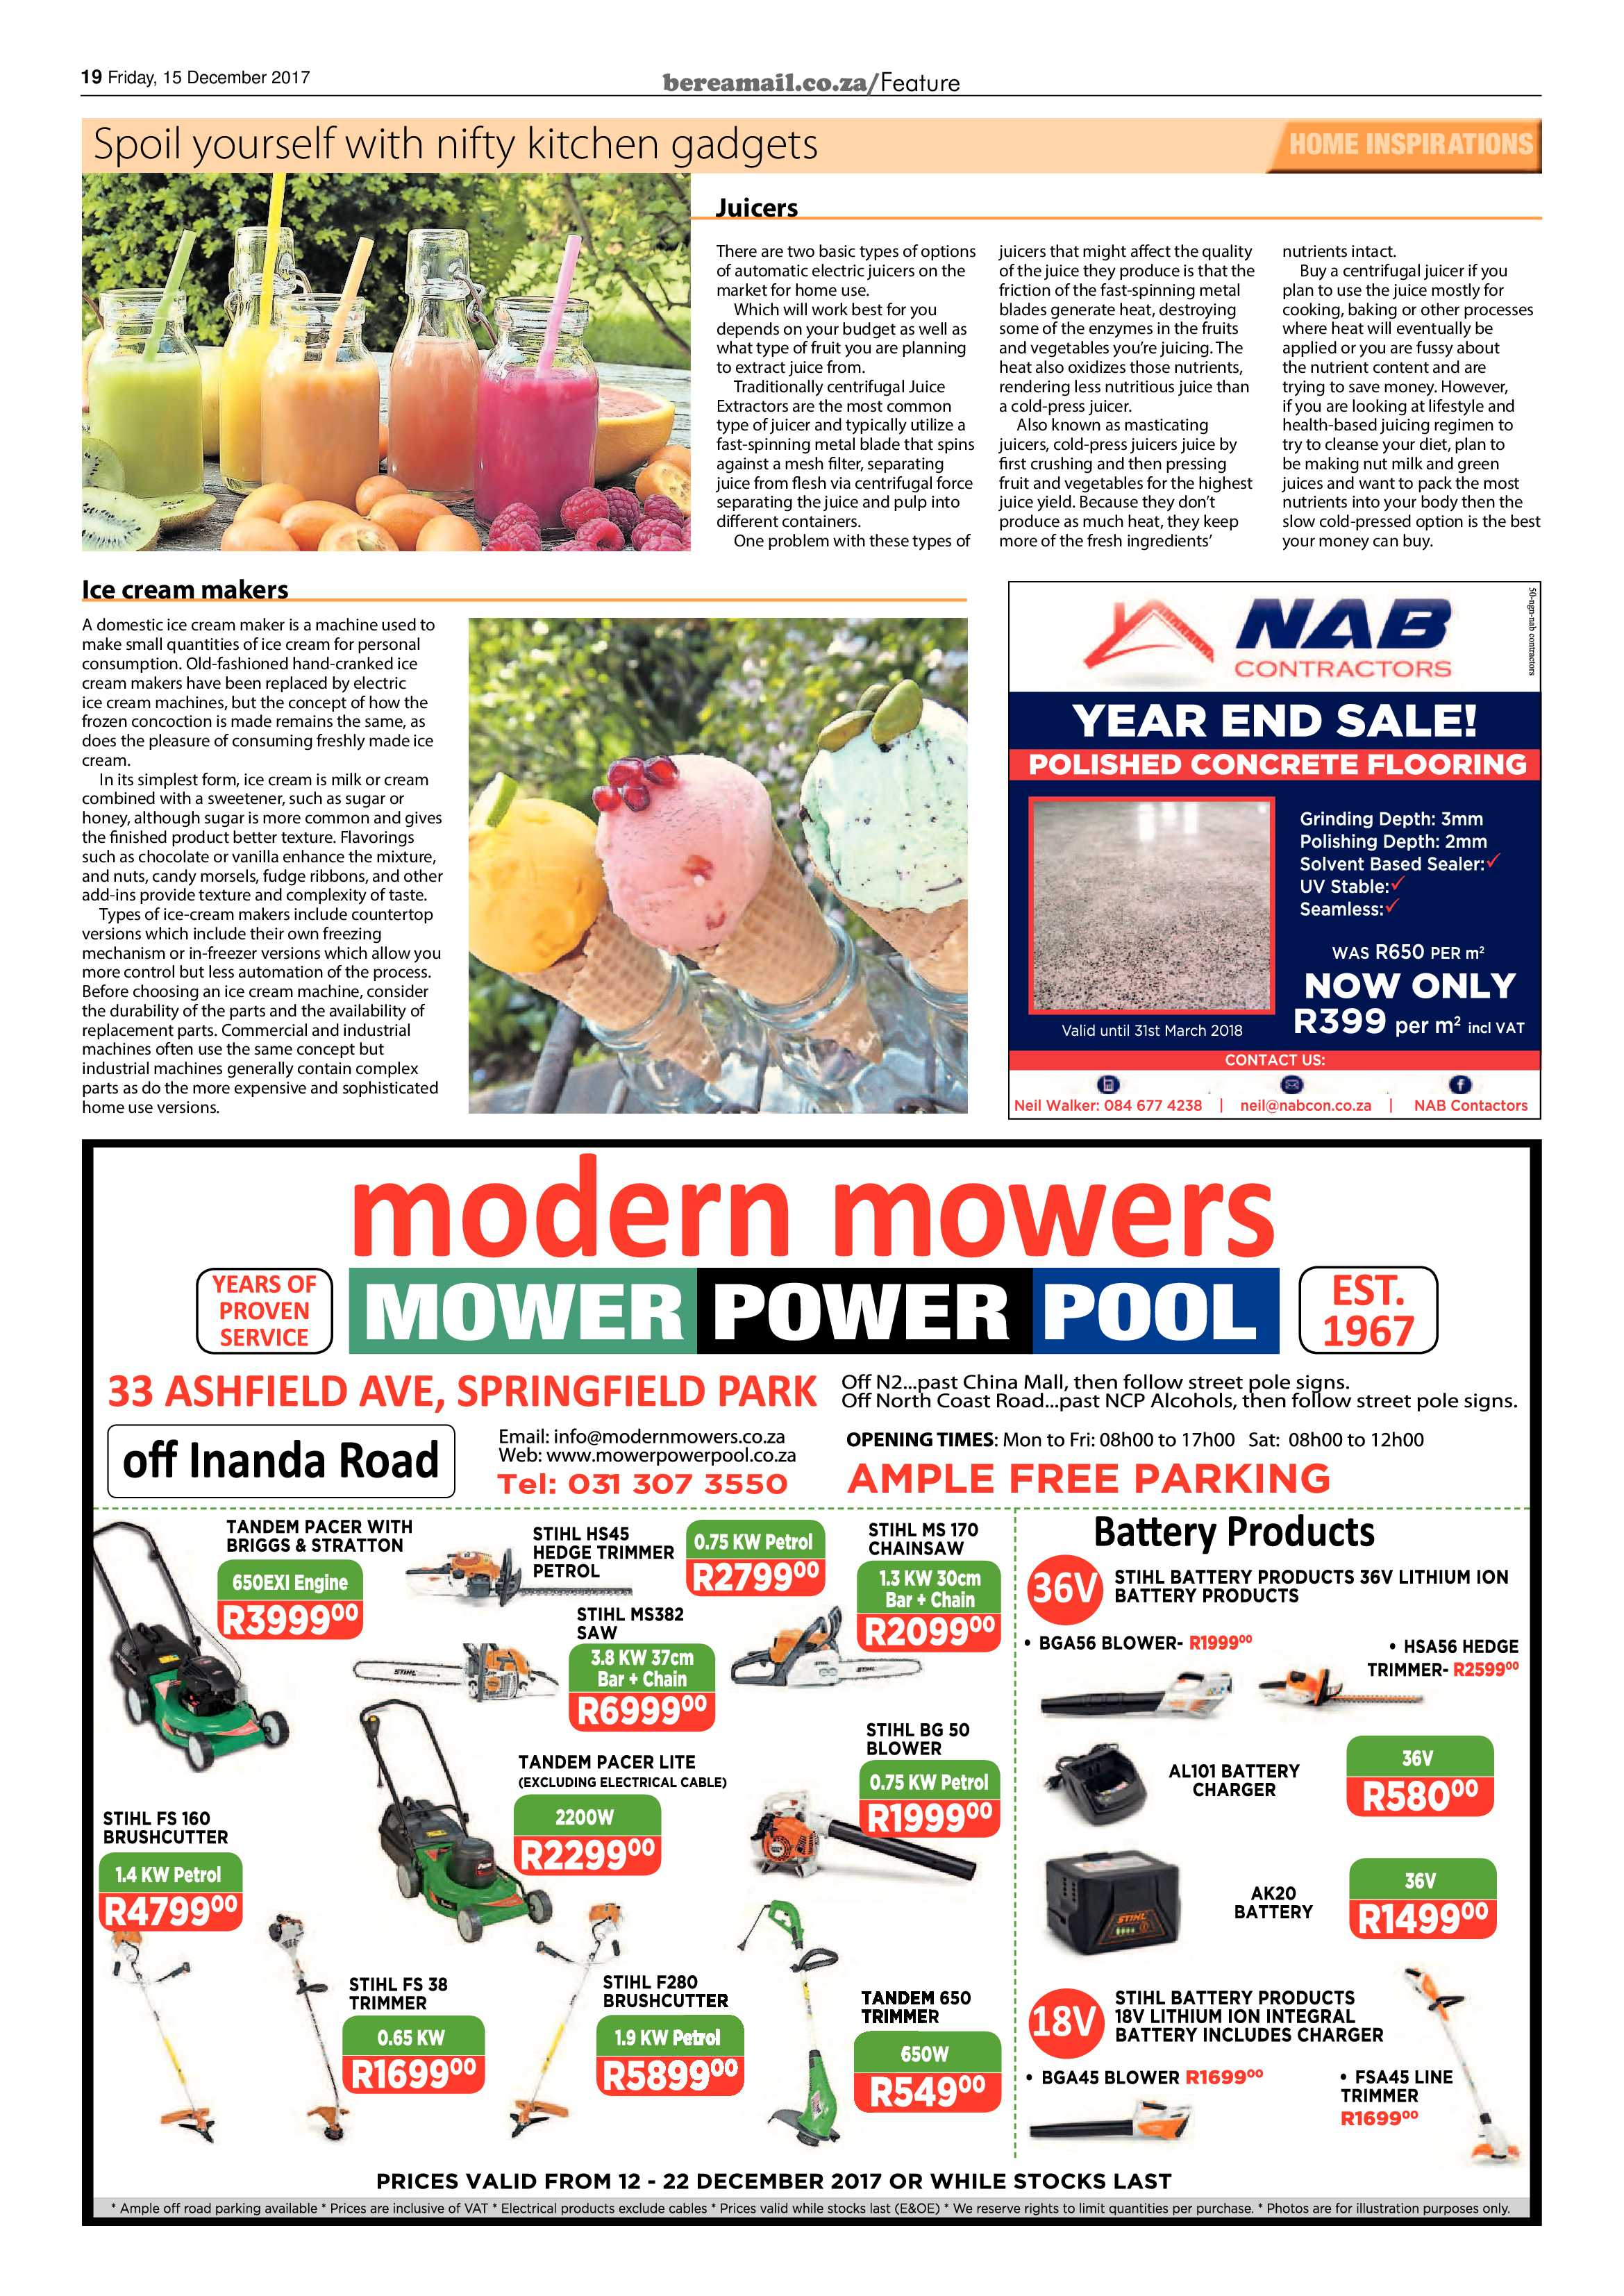 berea-mail-15-december-2017-epapers-page-19